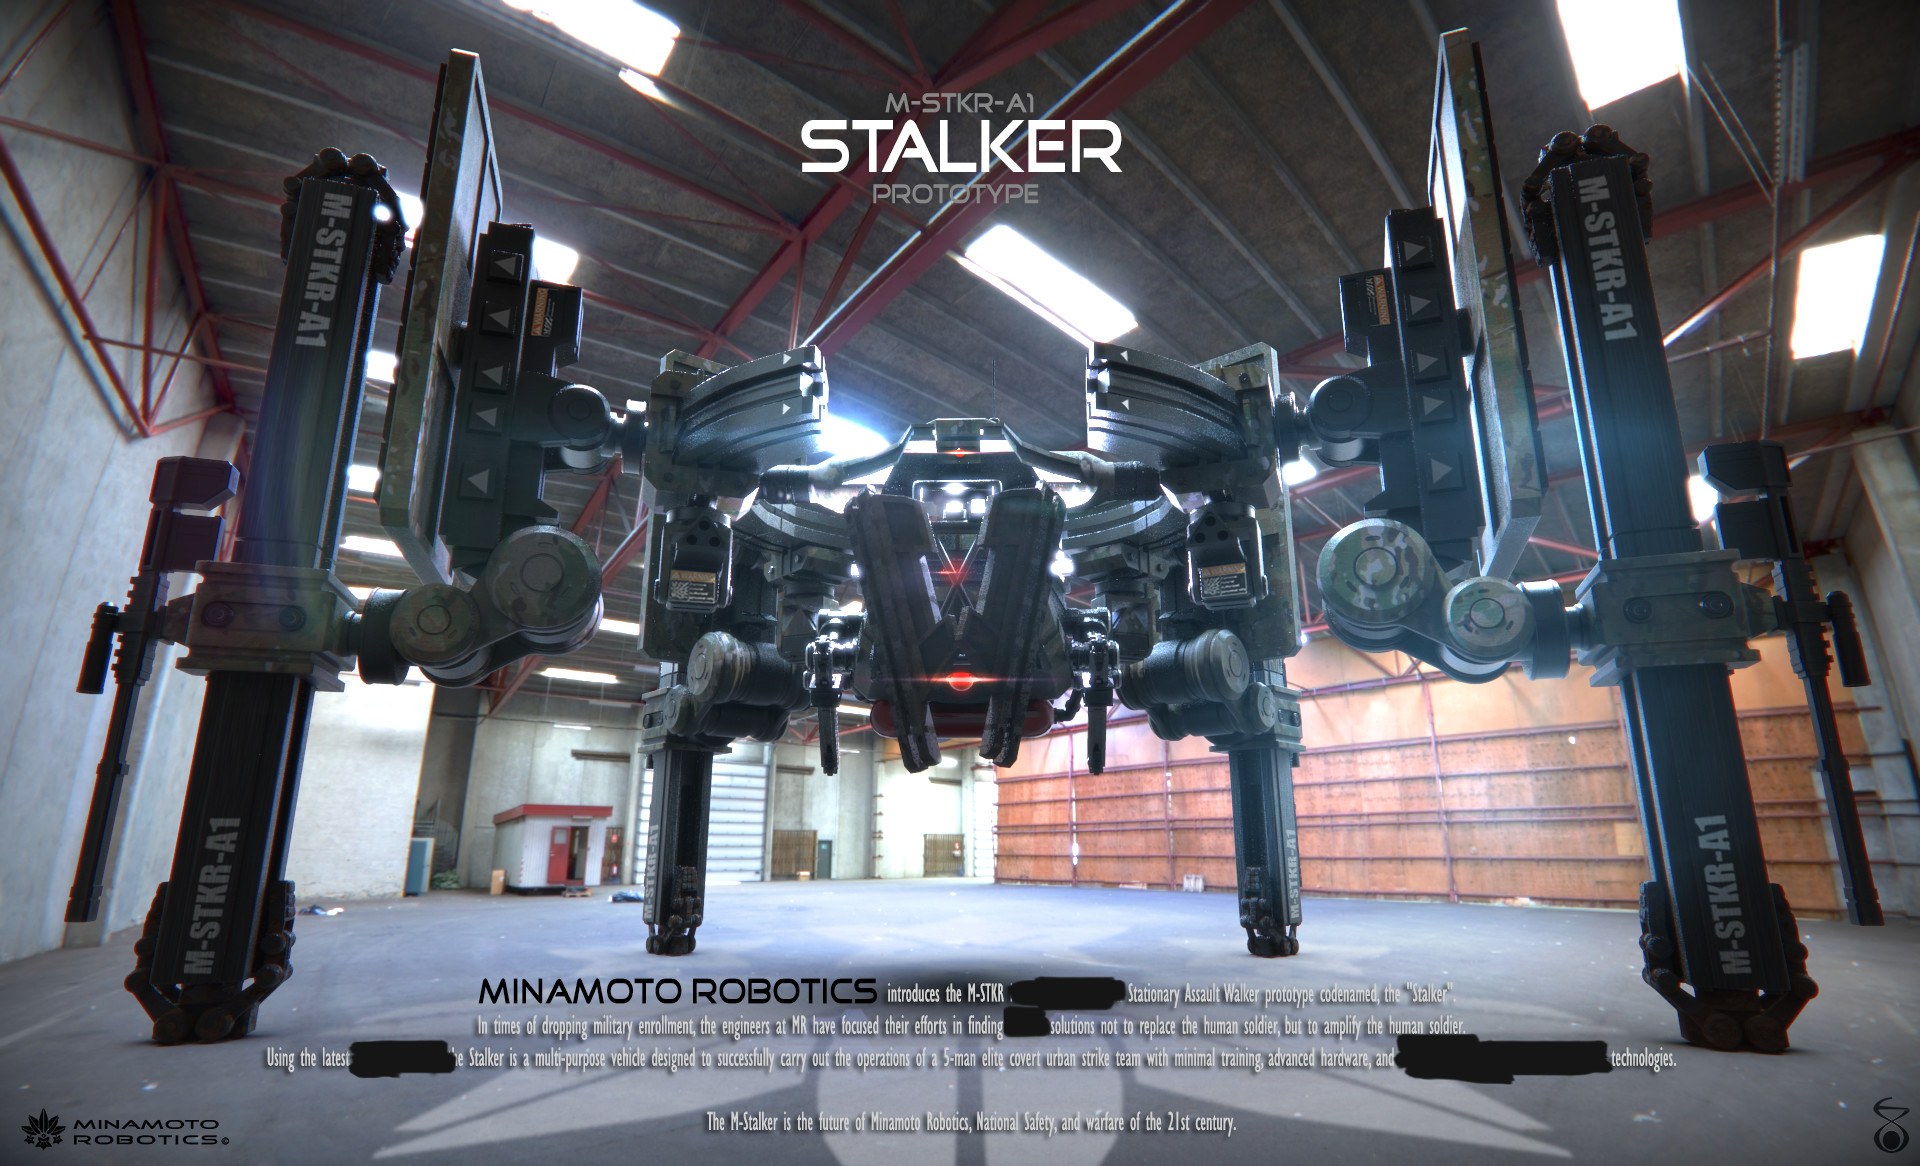 Using unconventional (and eventually realized by the UN as illegal) technology, the M-STKR-AI Assault Walker never made it passed prototype stage (cont...)